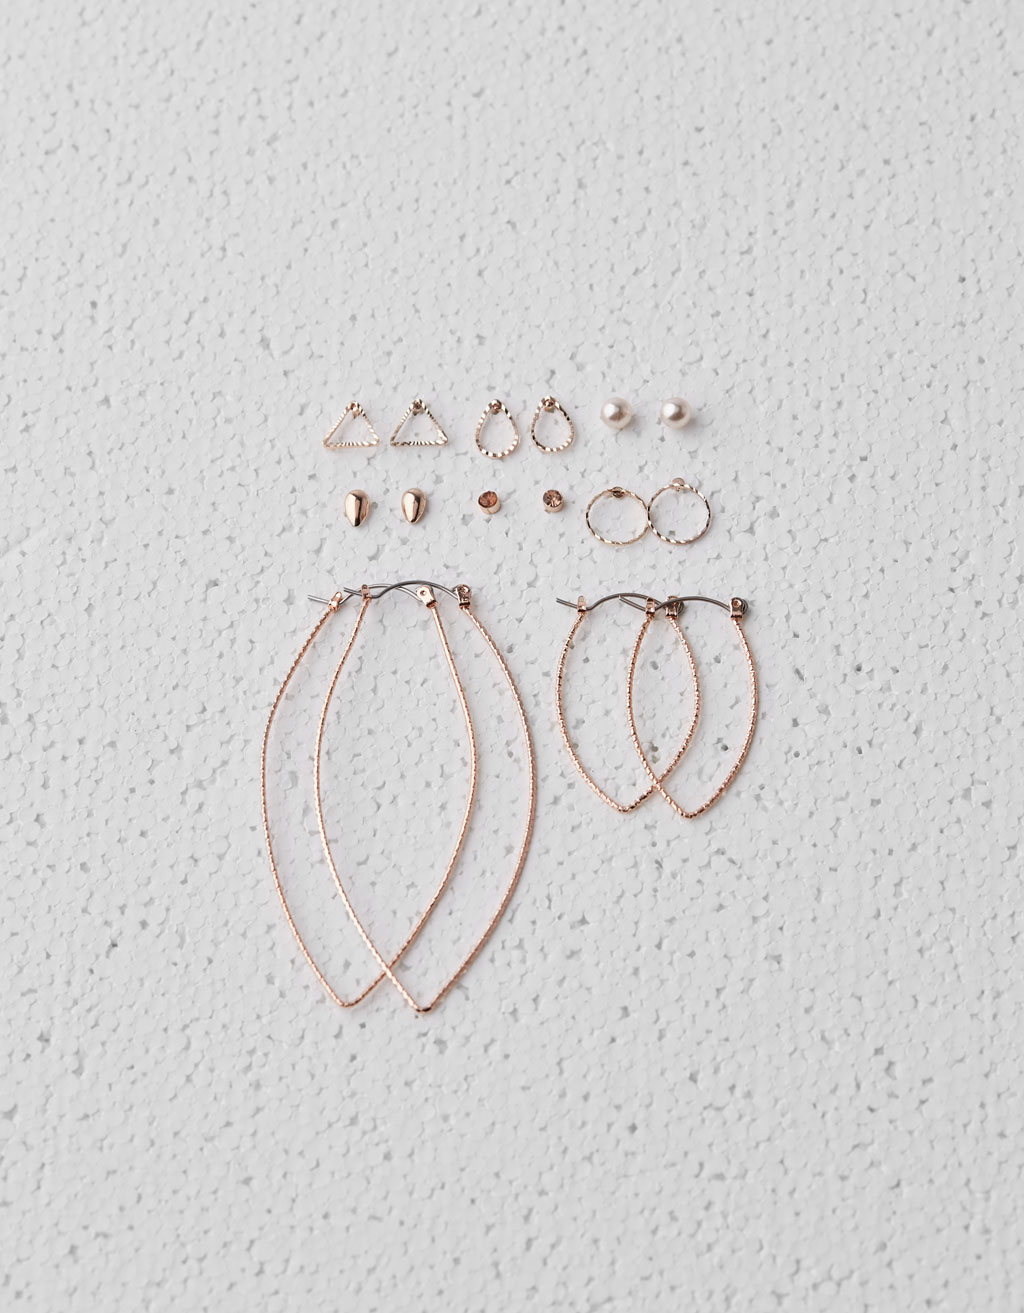 Pack de boucles d'oreilles assorties